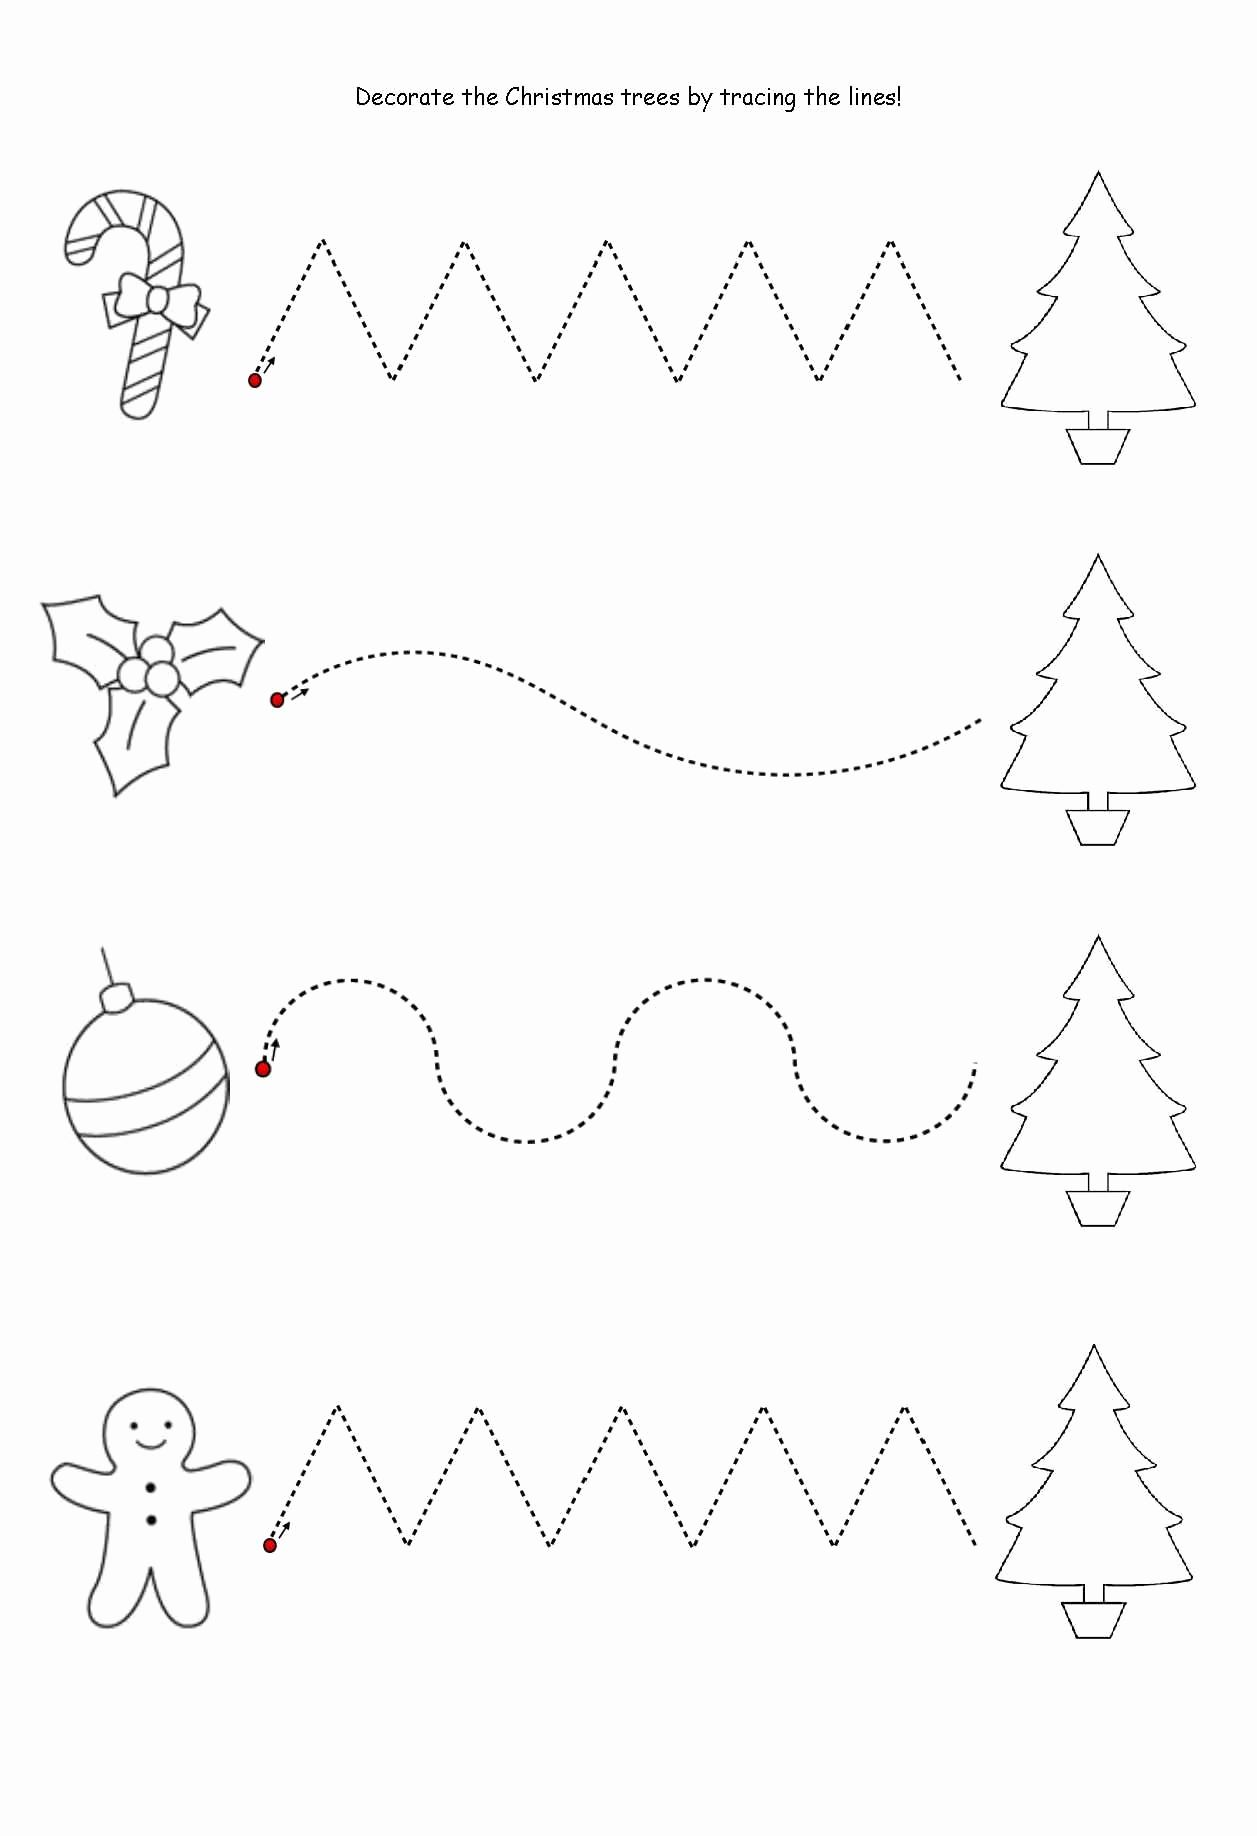 Tracing Line Patterns Printable Activities Printable